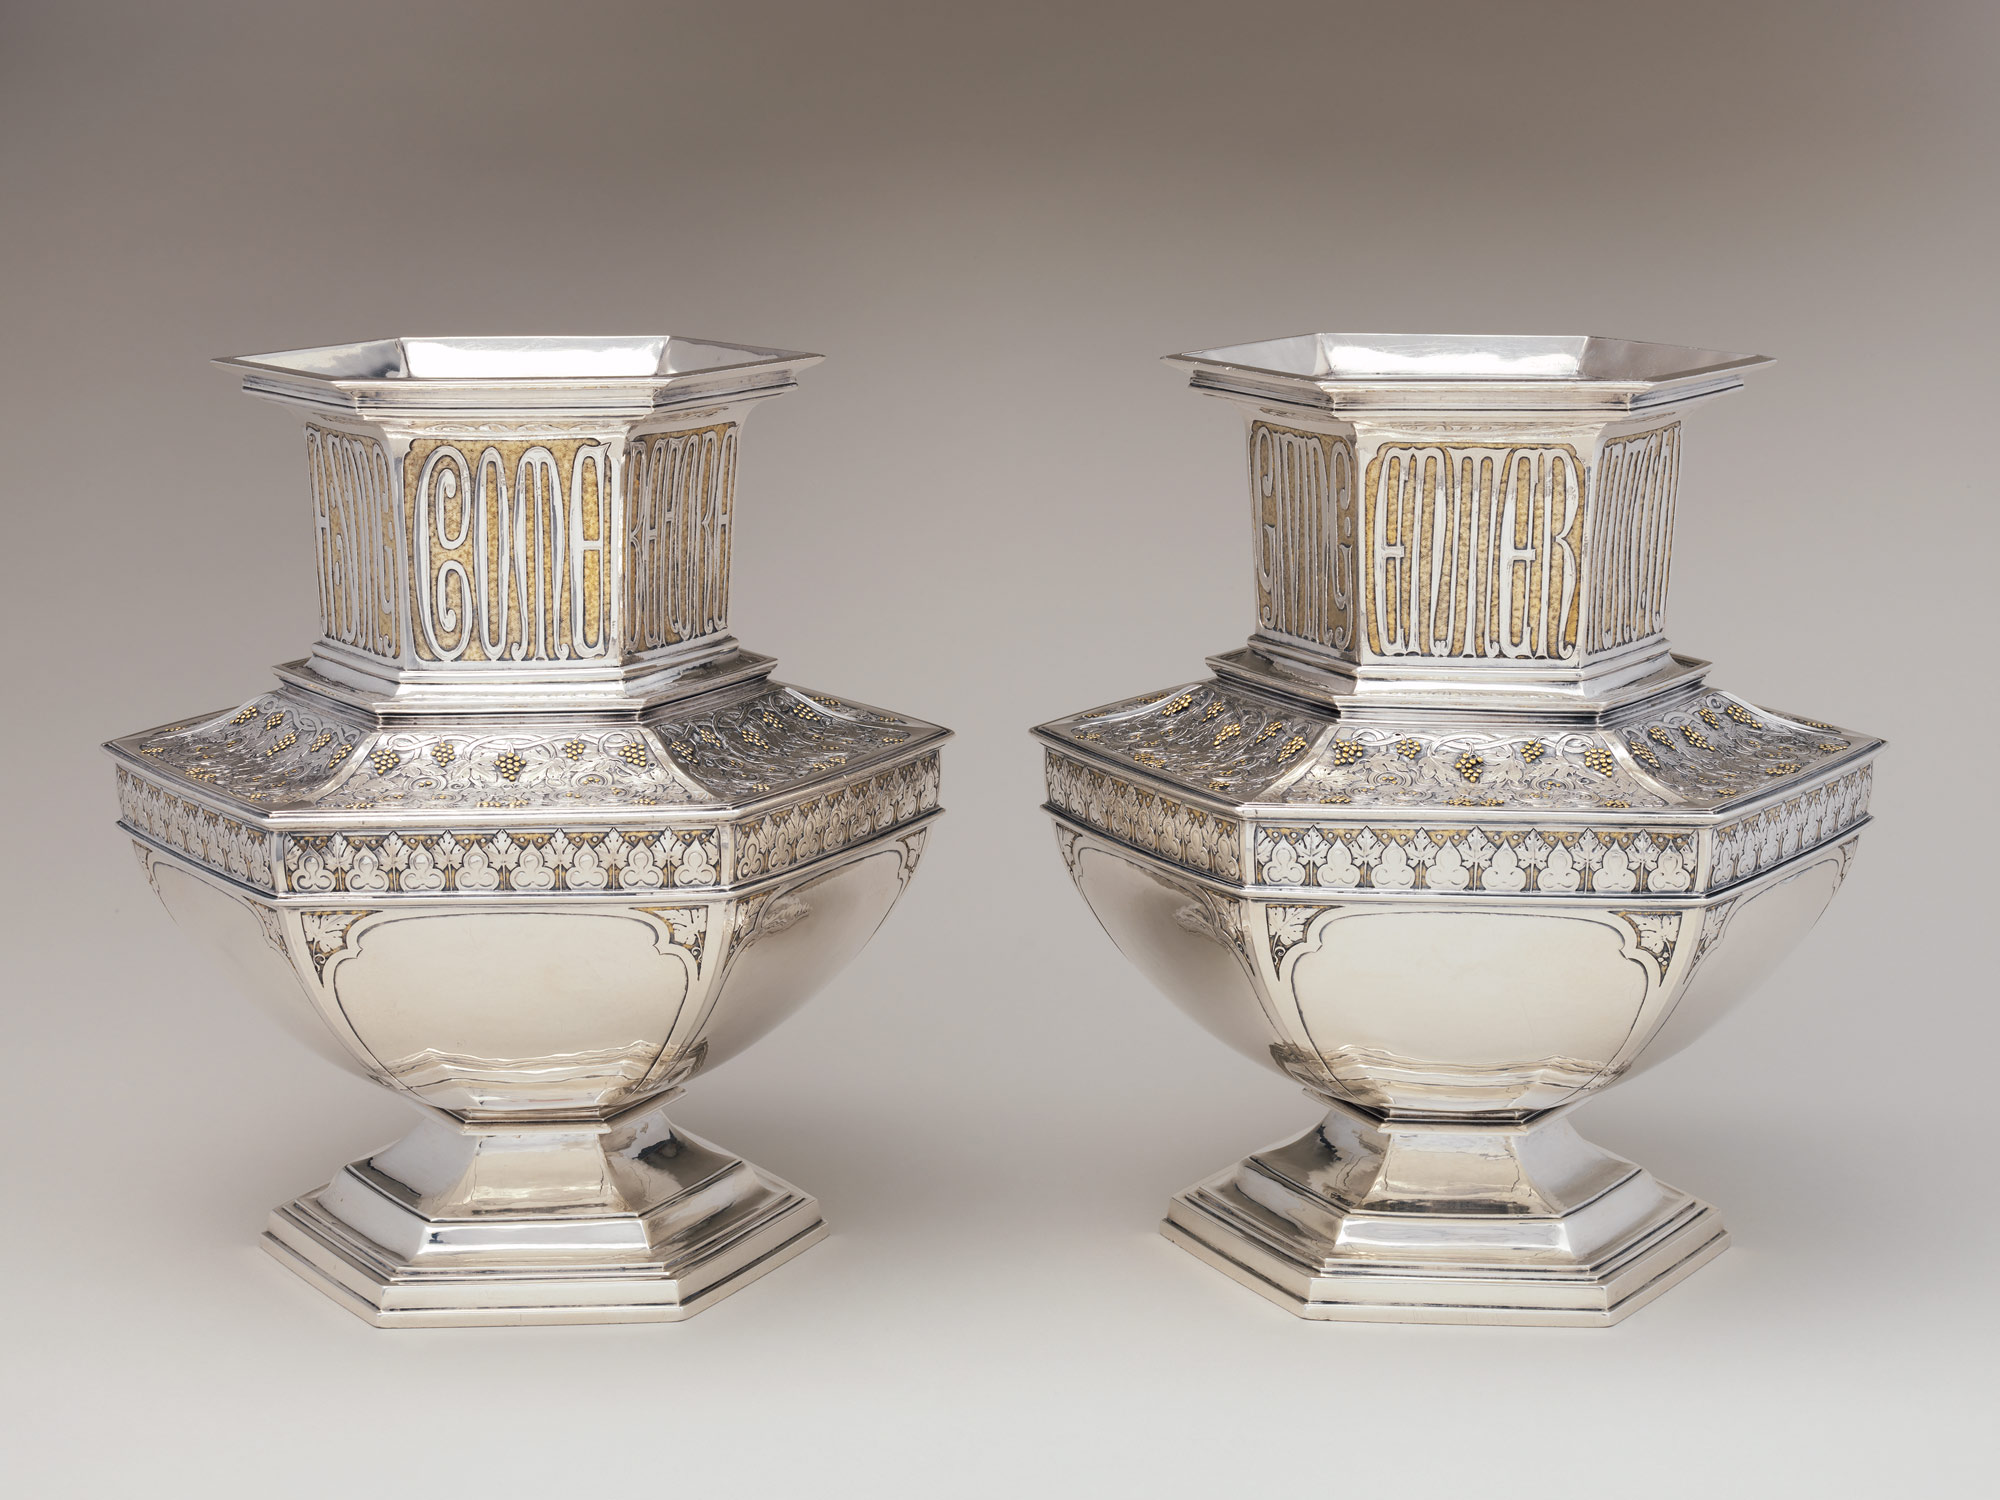 Arthur J. Stone and Herbert Taylor: Pair of Vases